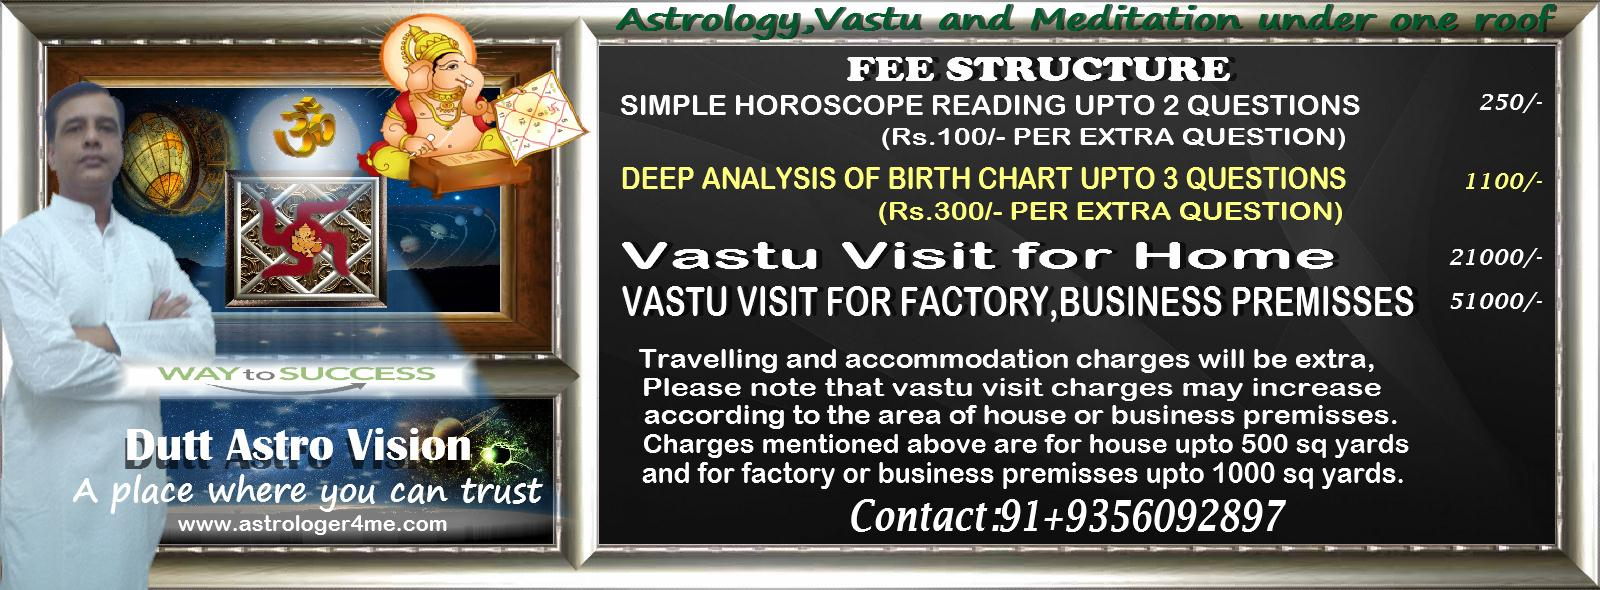 Astrologer Acharya Dutt Horoscope reading and Vastu visit Charges